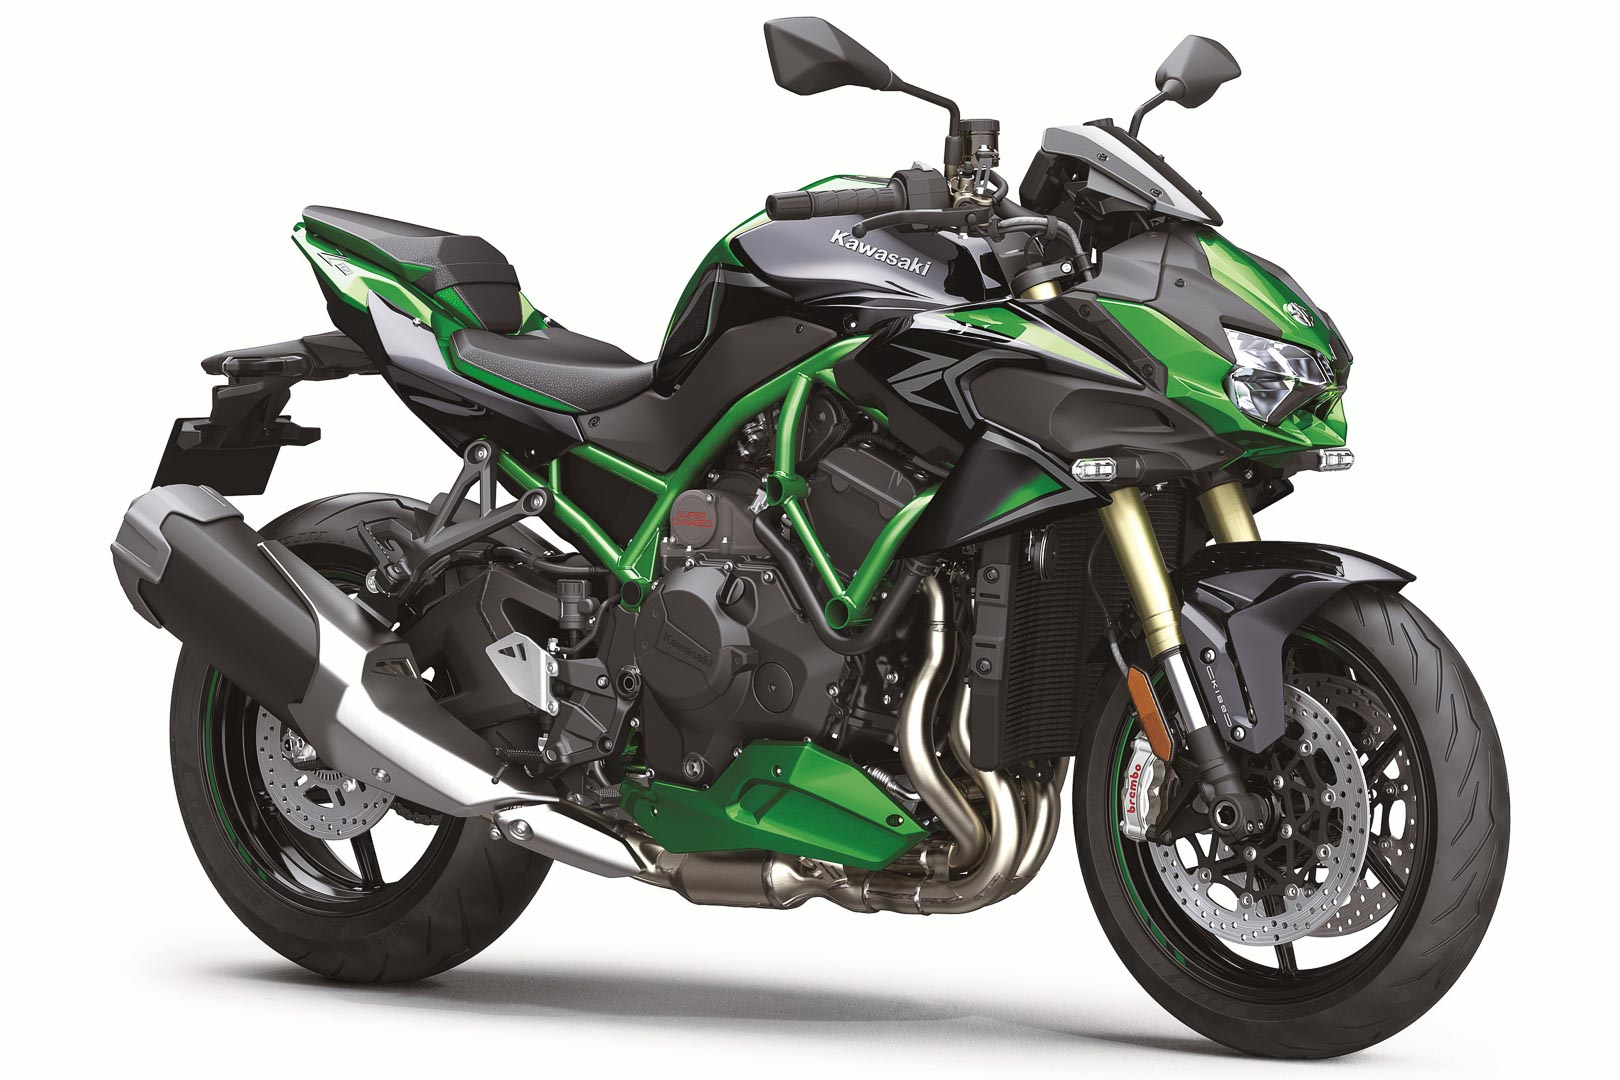 2021 Kawasaki Z H2 SE First Look: Price, Photos, and Specs